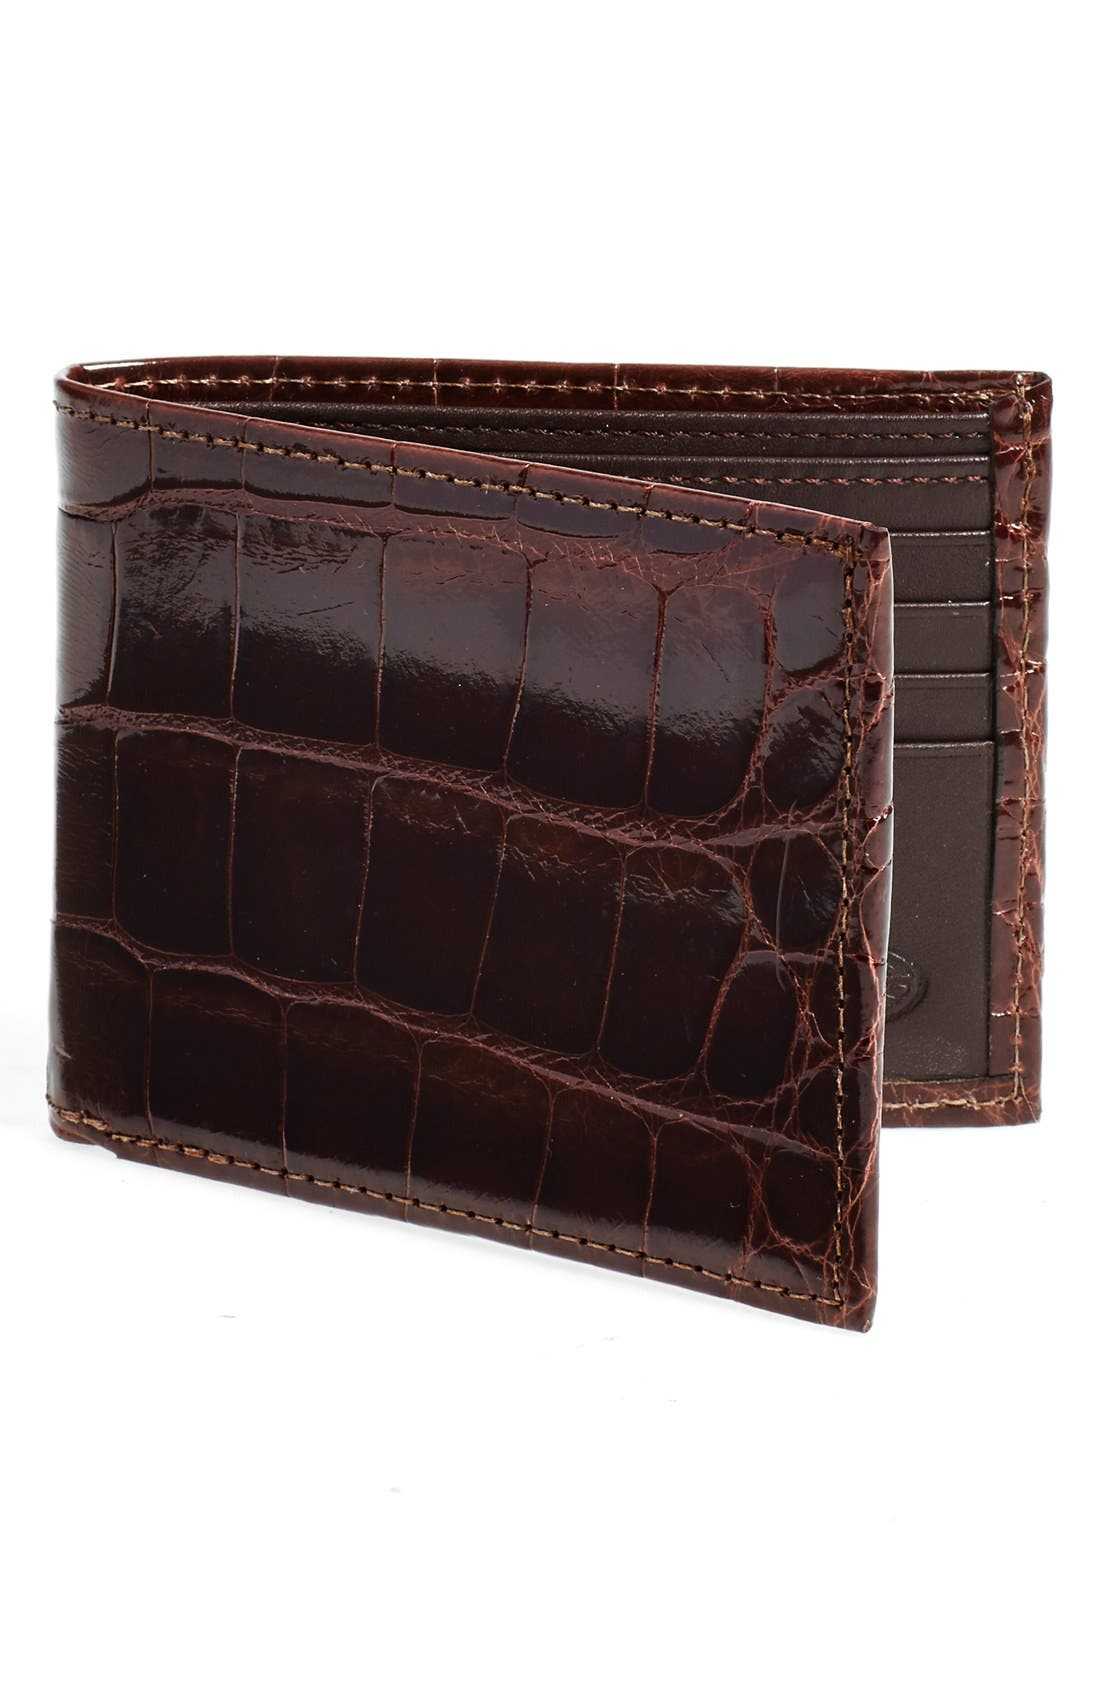 Main Image - Torino Belts Genuine Alligator Wallet